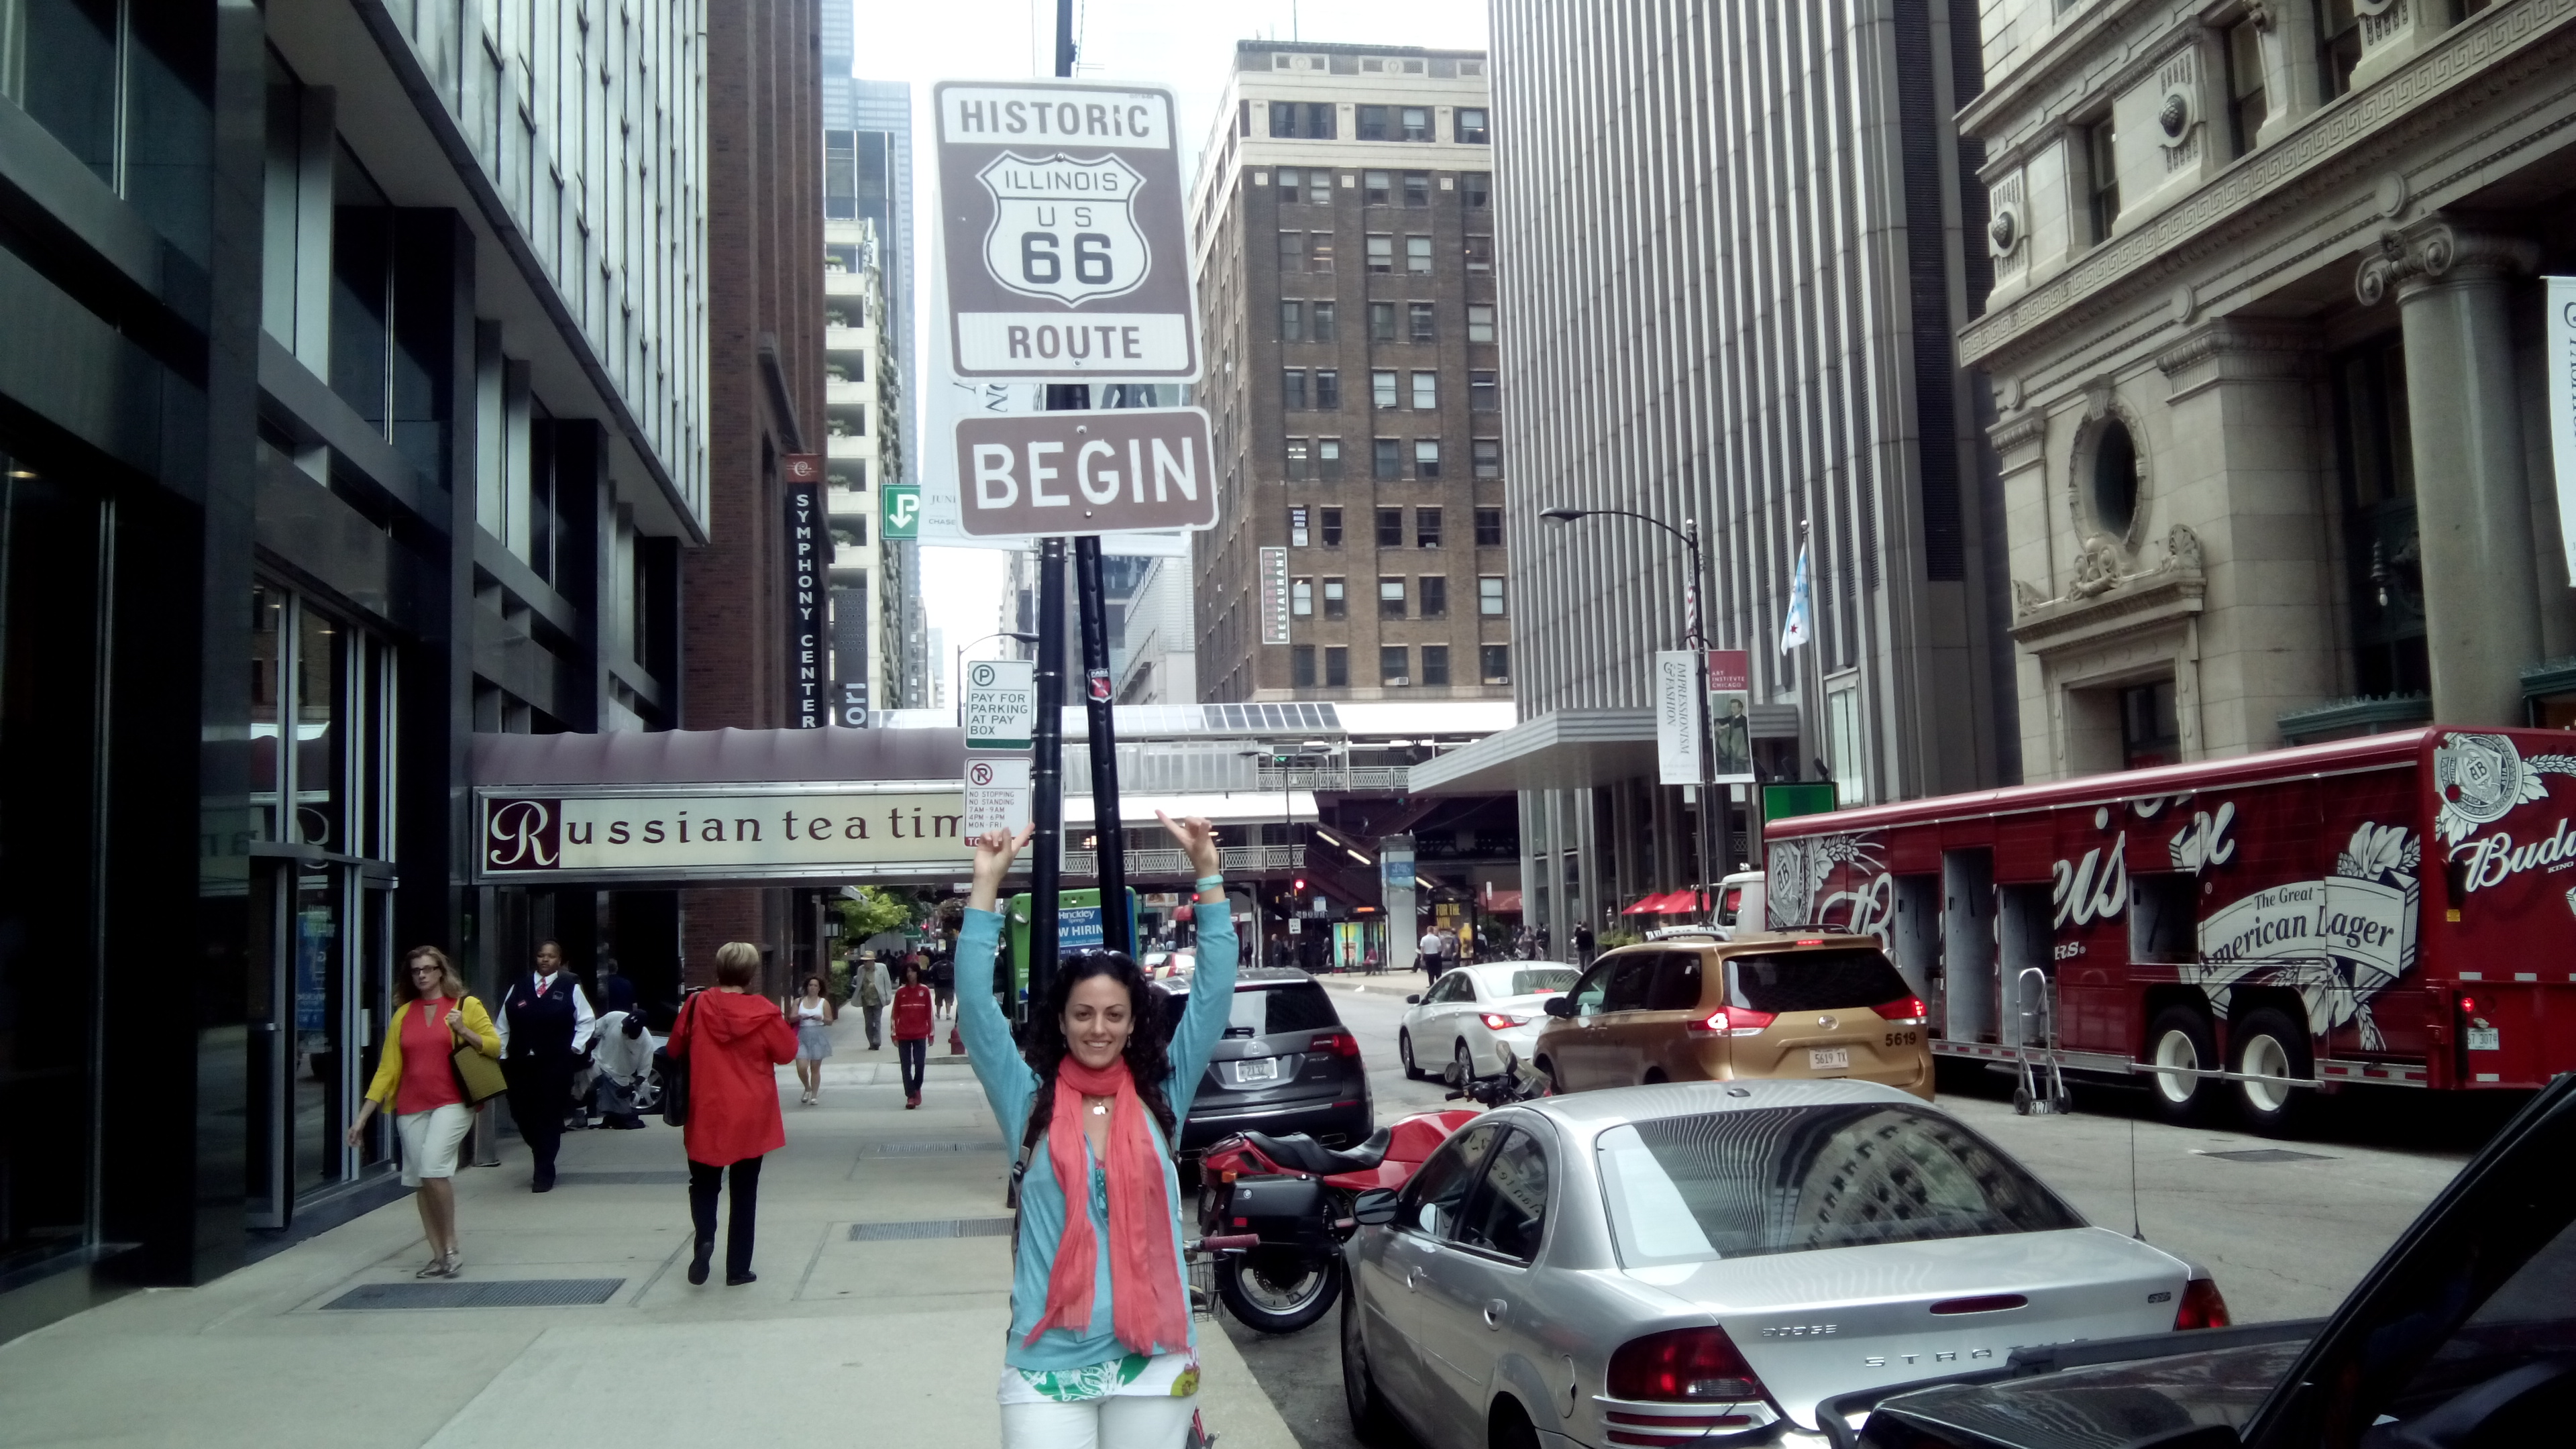 get your kicks on route 66 (1) – doggone blues